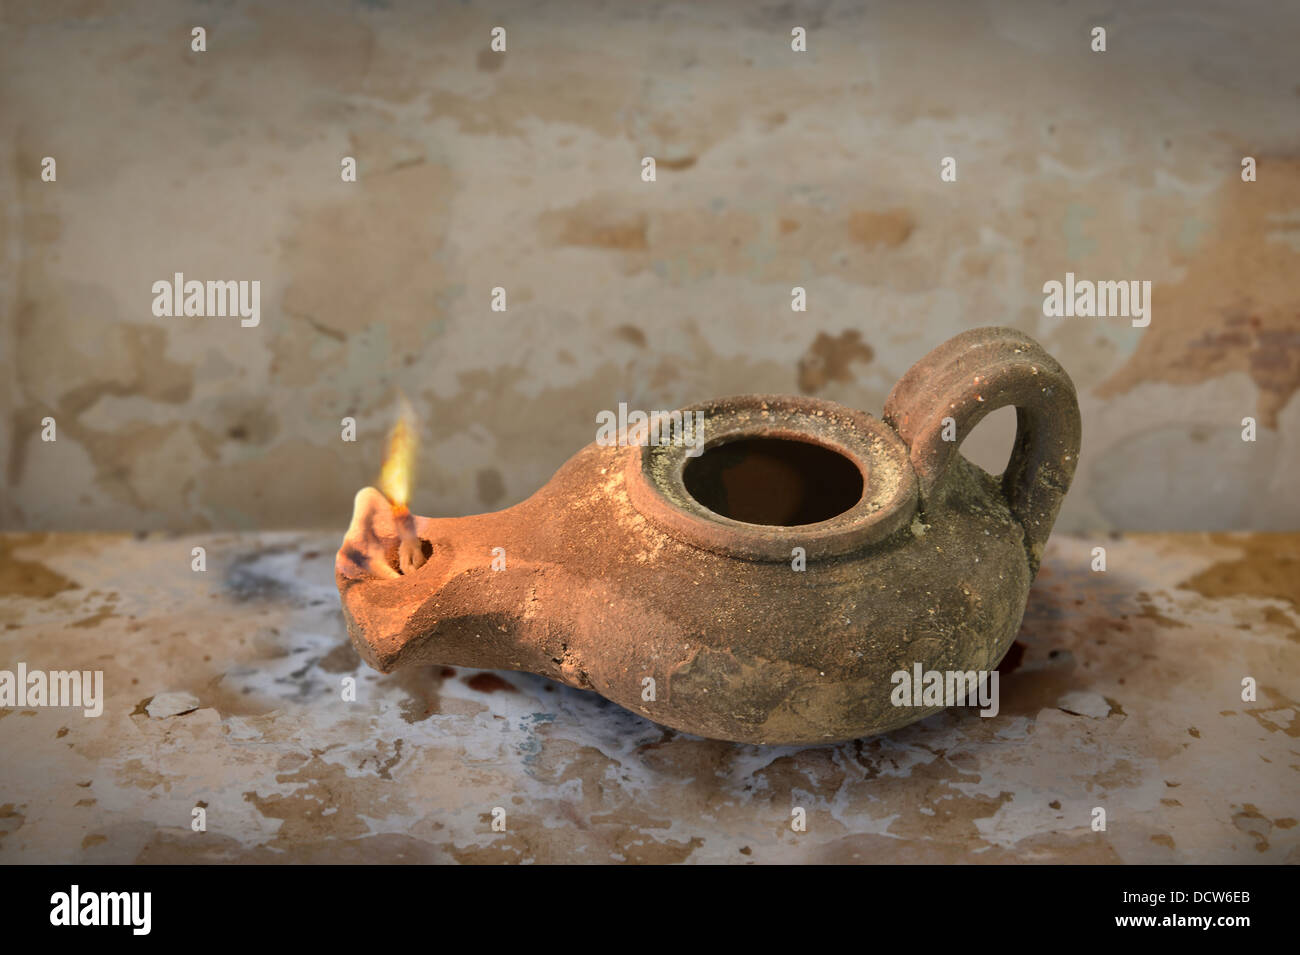 Ancient Middle Eastern oil lamp on grunge table - Stock Image